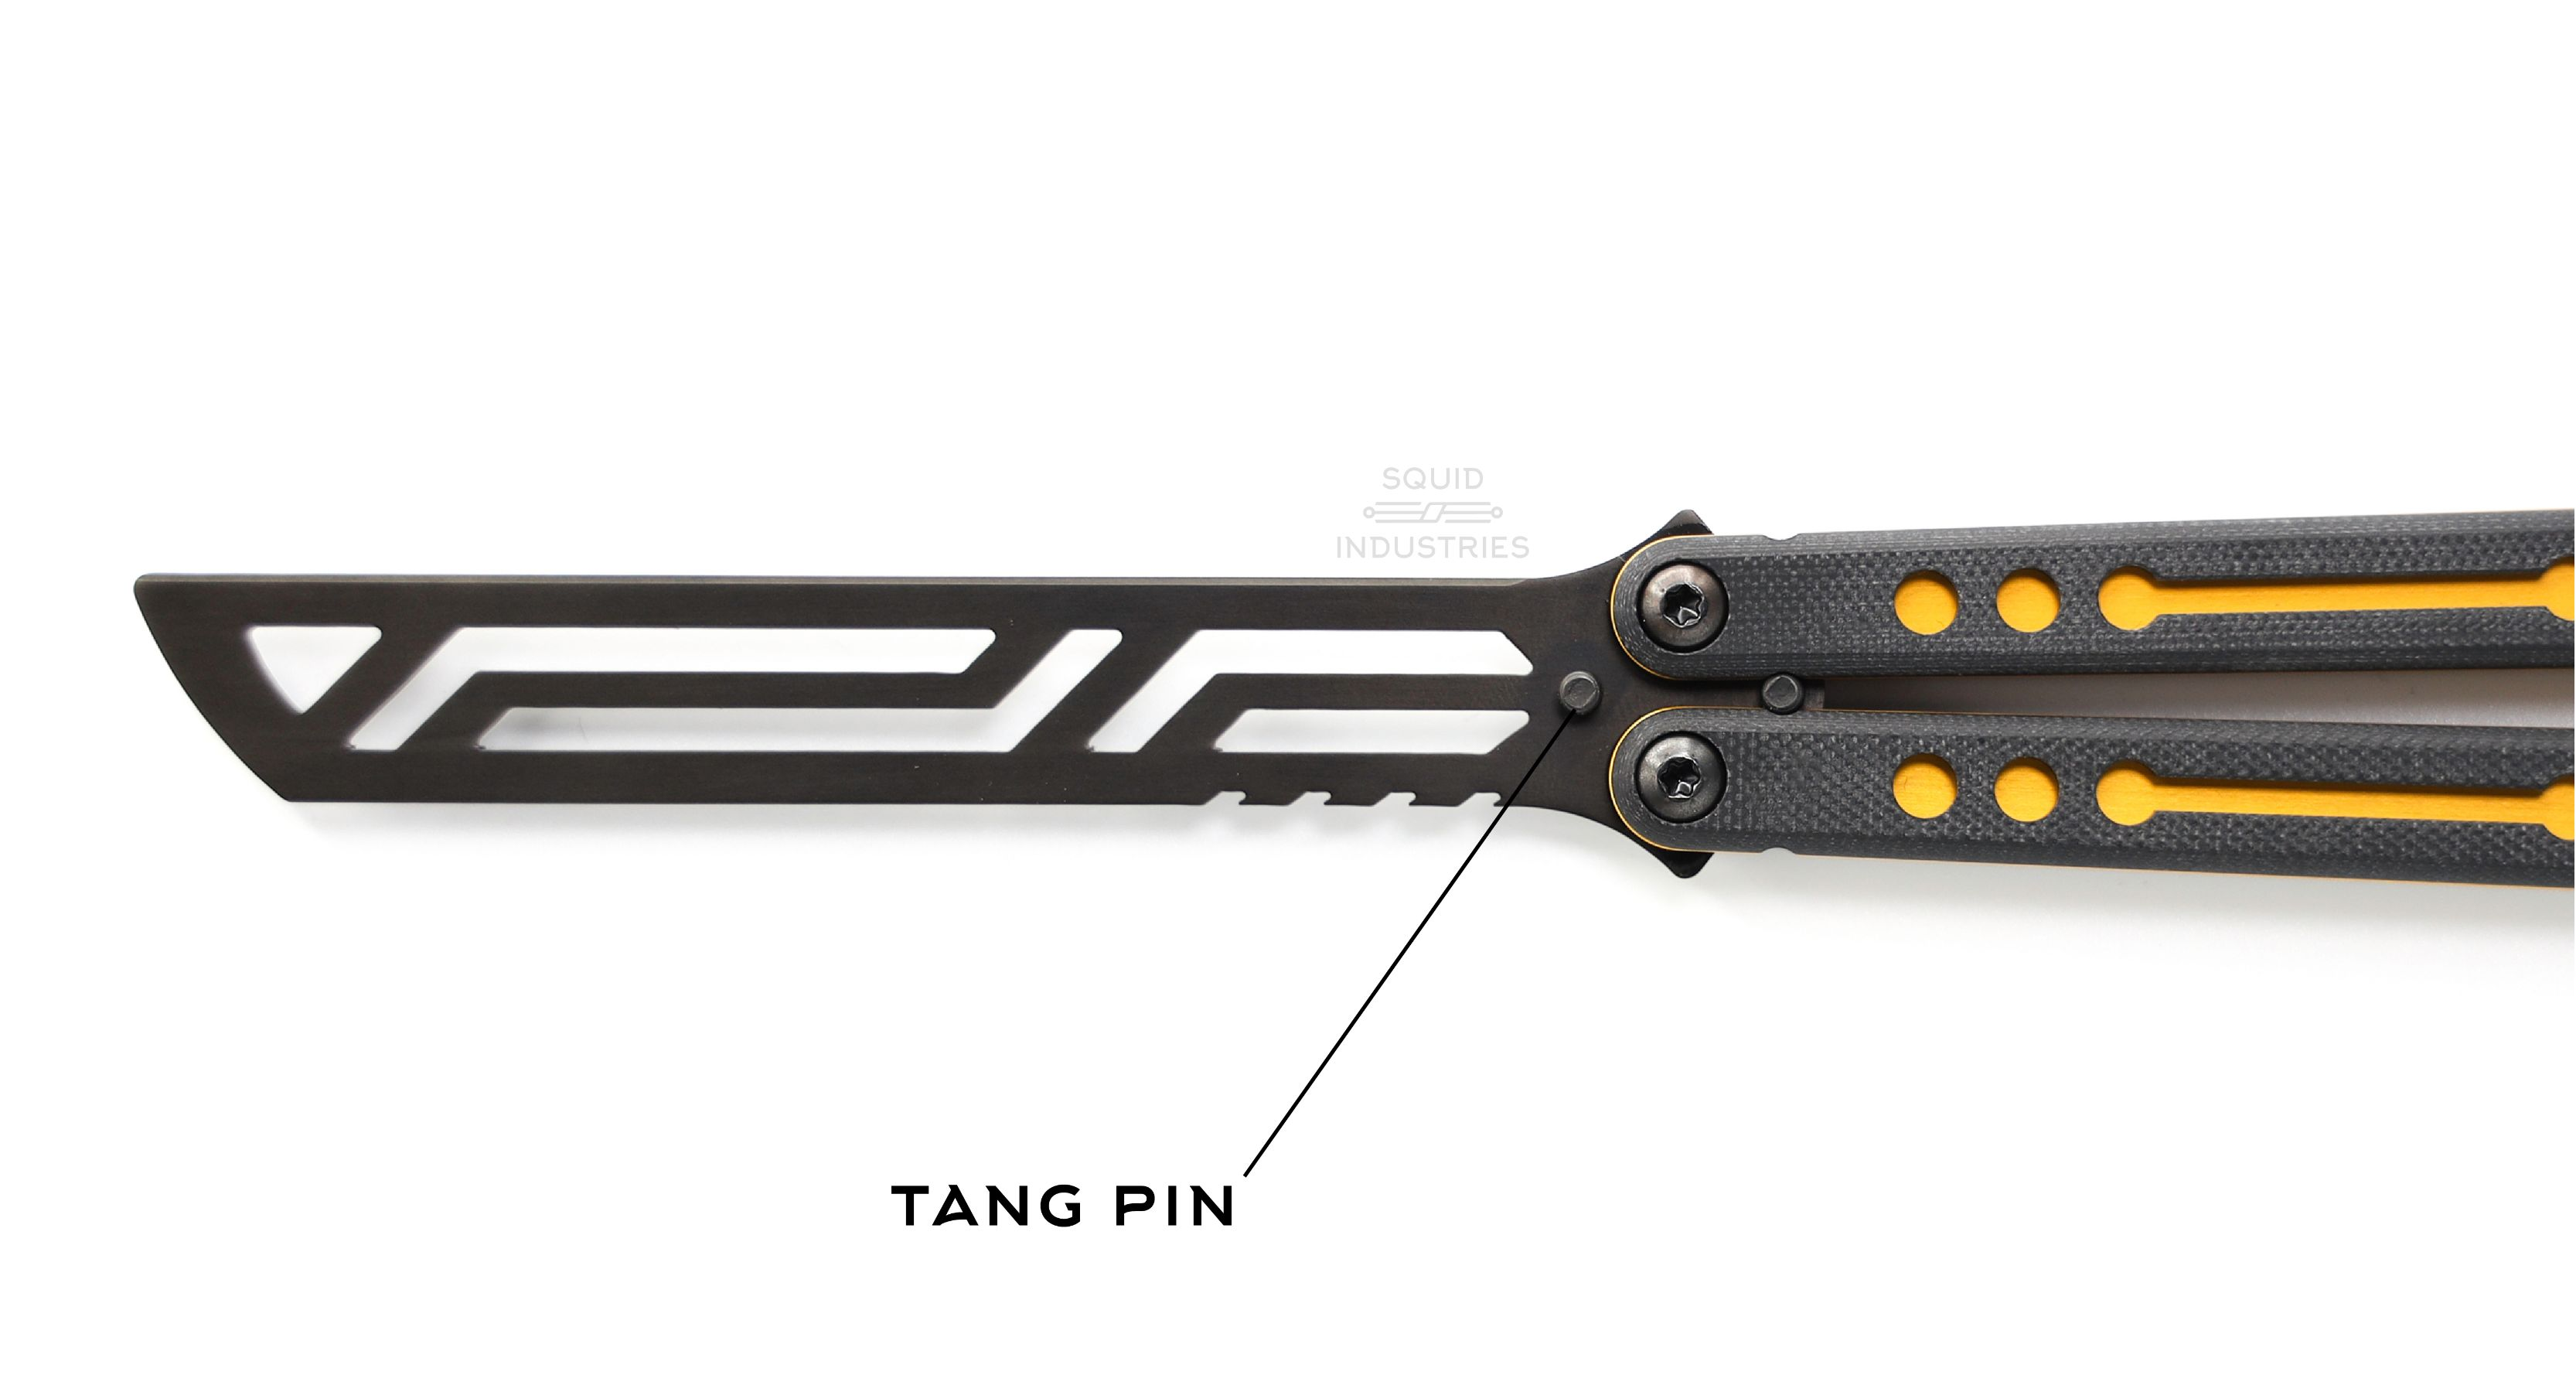 Inked Gold Nautilus Balisong Butterfly knife Trainer | Squid Industries